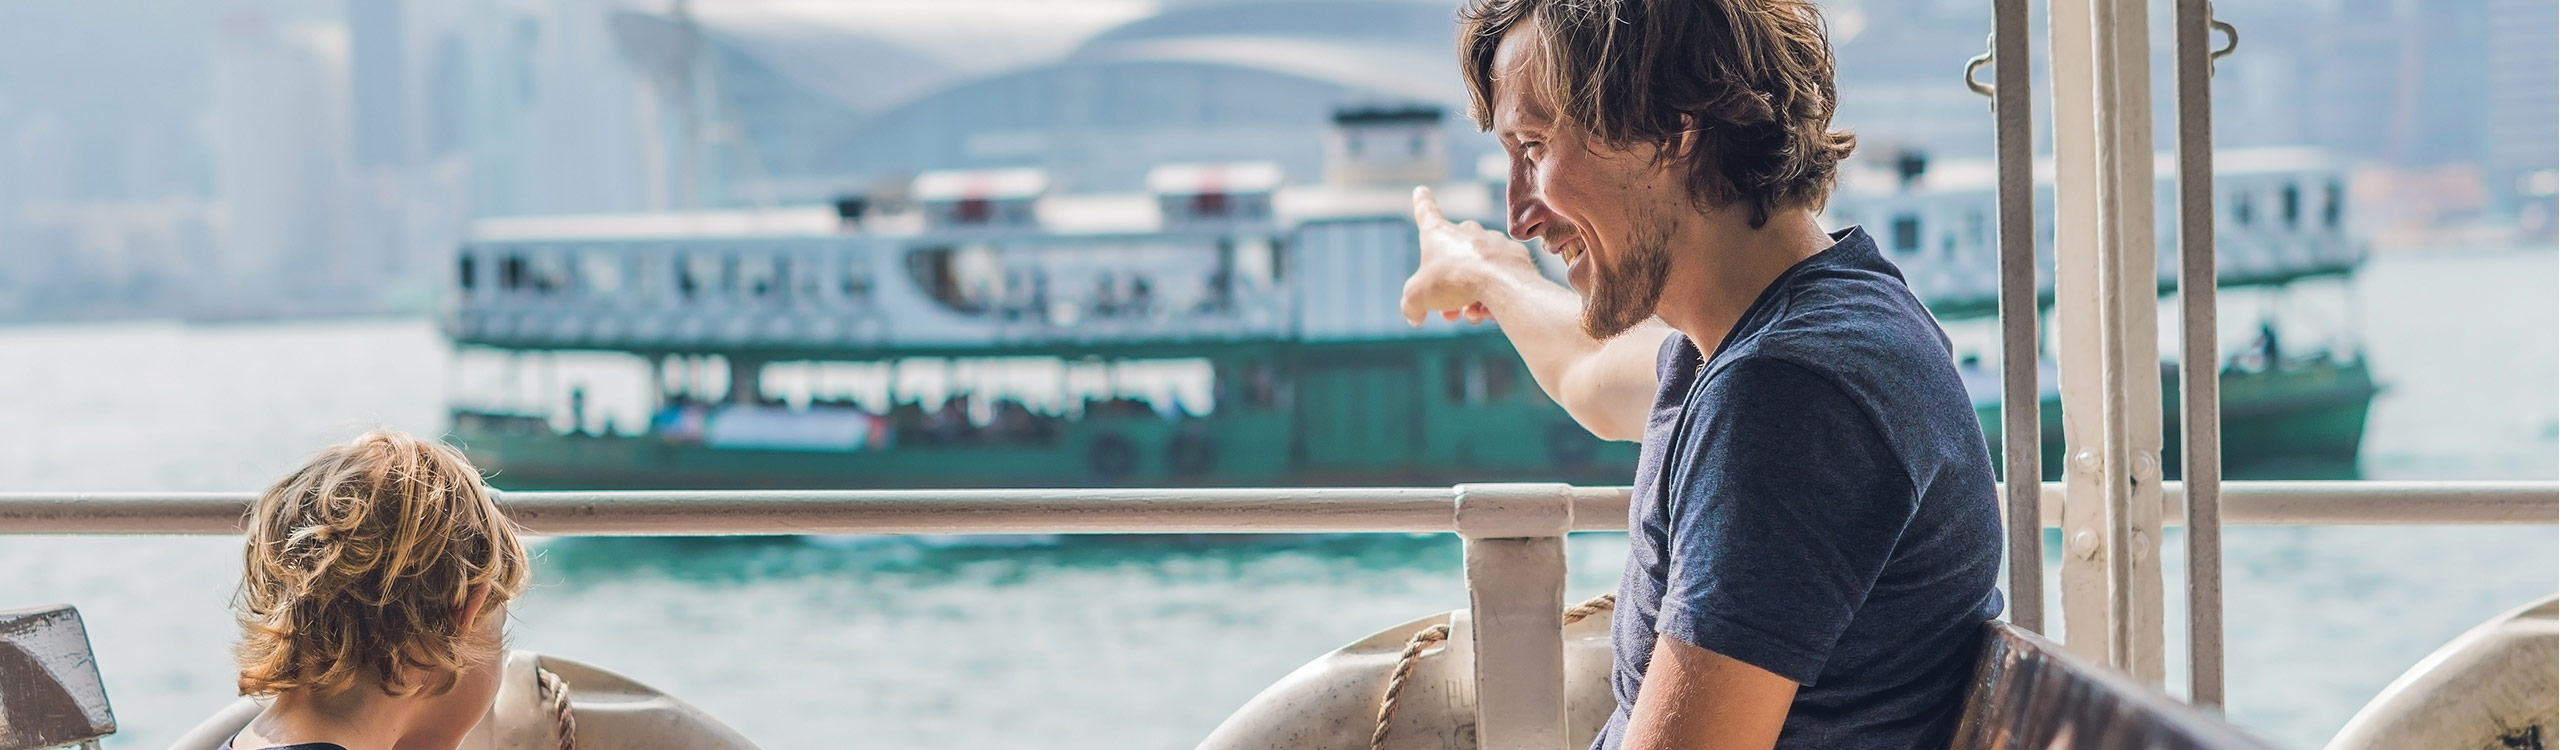 How to Avoid and Treat Seasickness When Travelling | Tips